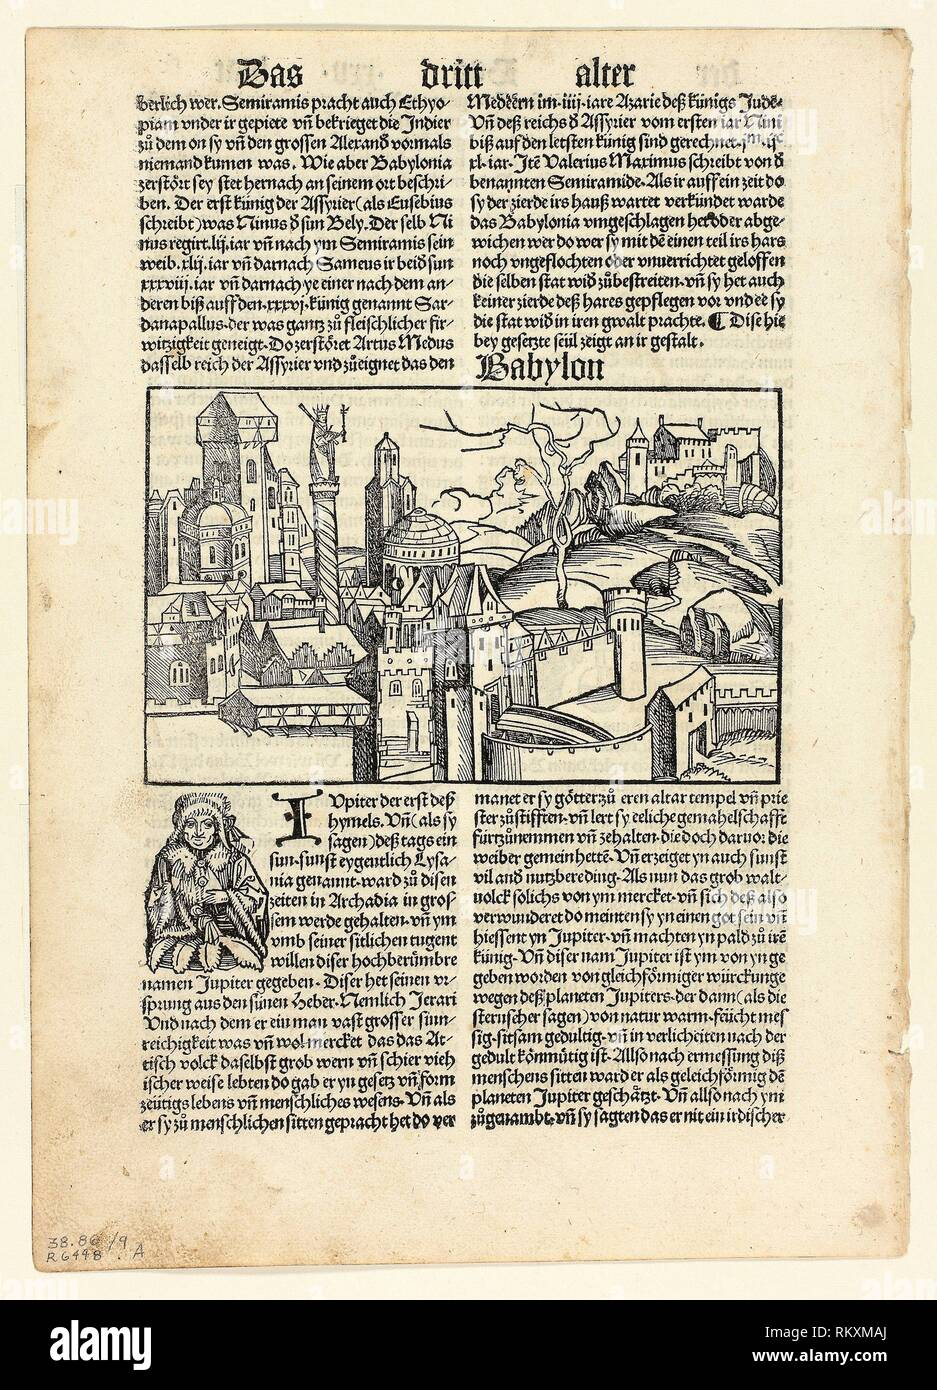 Babylon from Schedel Weltchronik (Schedel's World History), Plate 9 from Woodcuts from Books of the 15th Century - 1496, portfolio assembled 1929 - - Stock Image